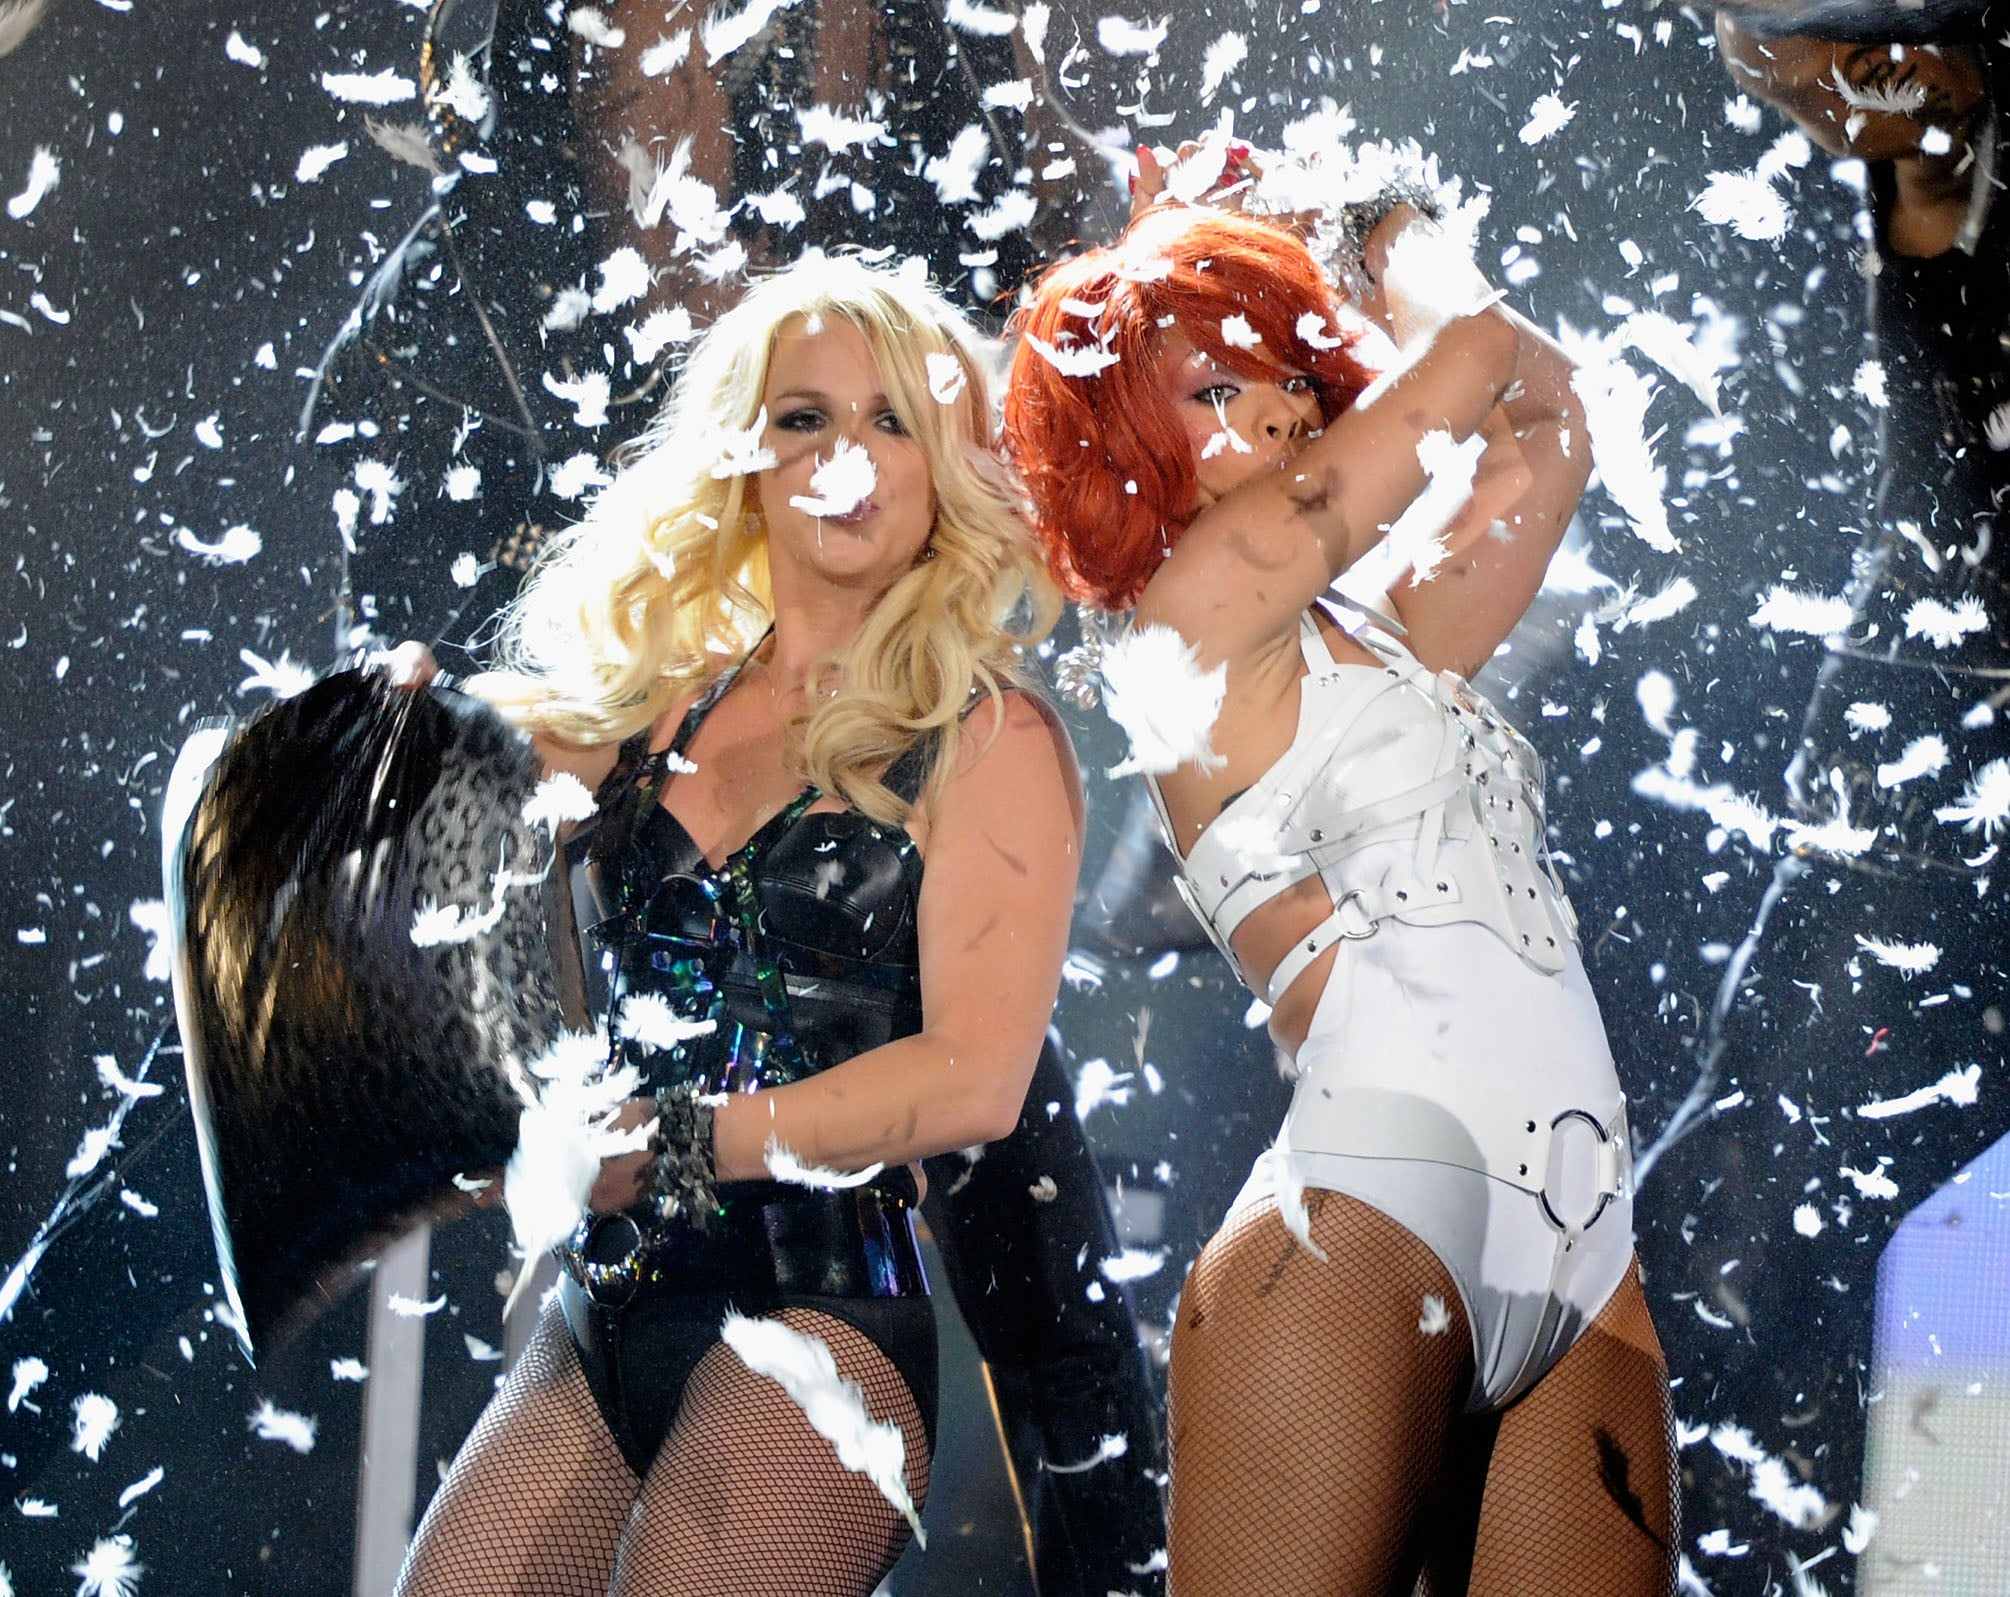 Britney Spears and Rihanna On Stage